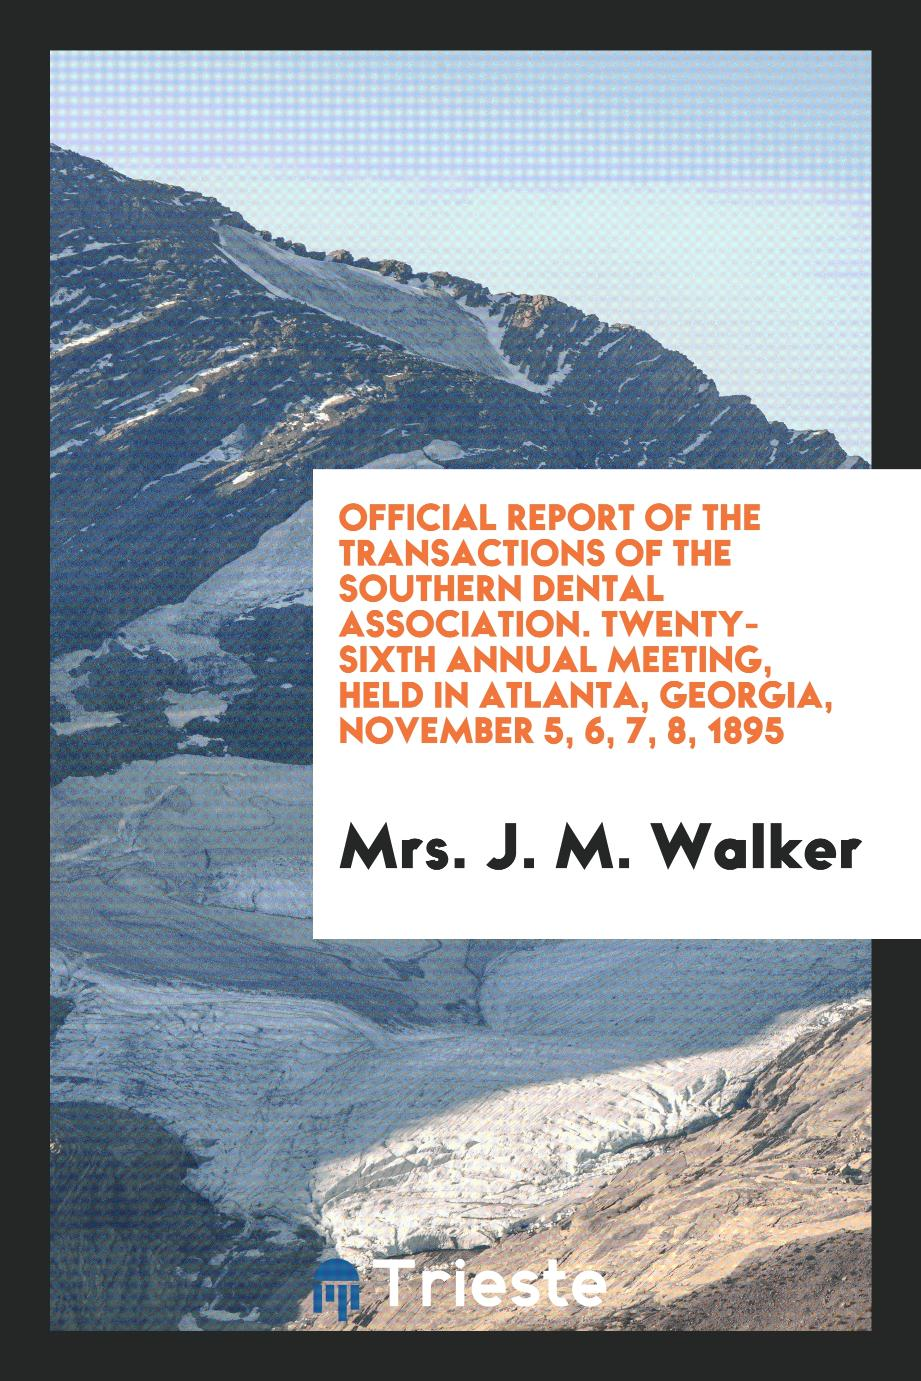 Official Report of the Transactions of the Southern Dental Association. Twenty-Sixth Annual Meeting, Held in Atlanta, Georgia, November 5, 6, 7, 8, 1895